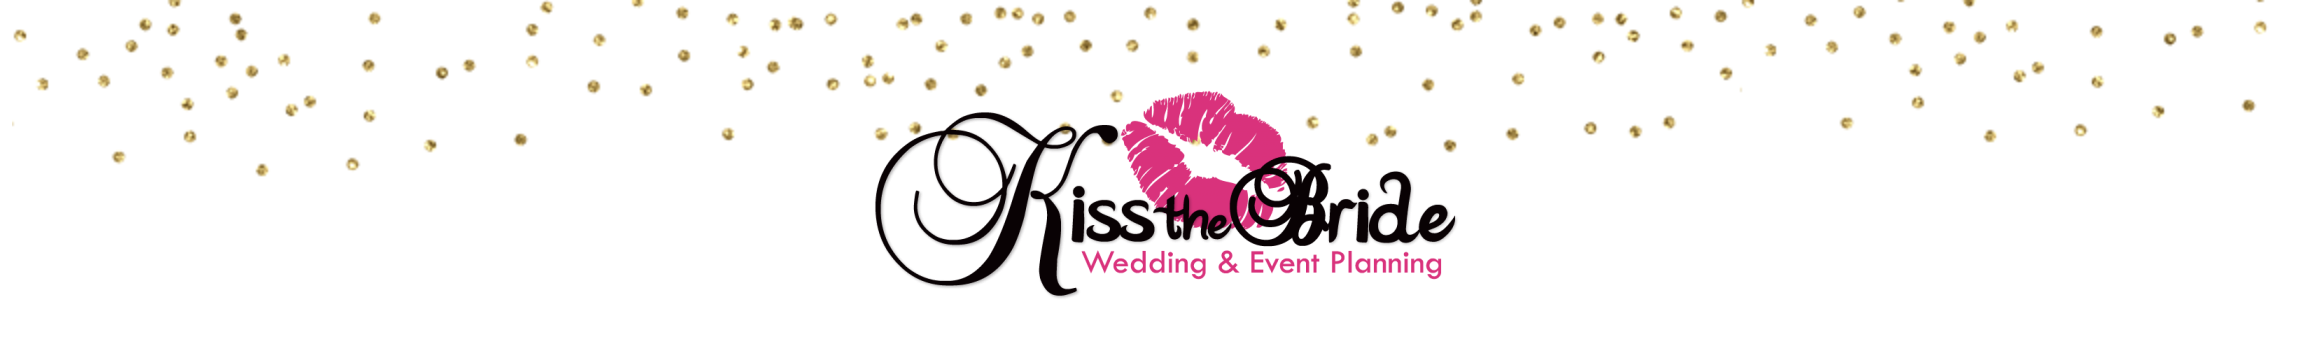 Seaside FL Kiss The Bride Weddings